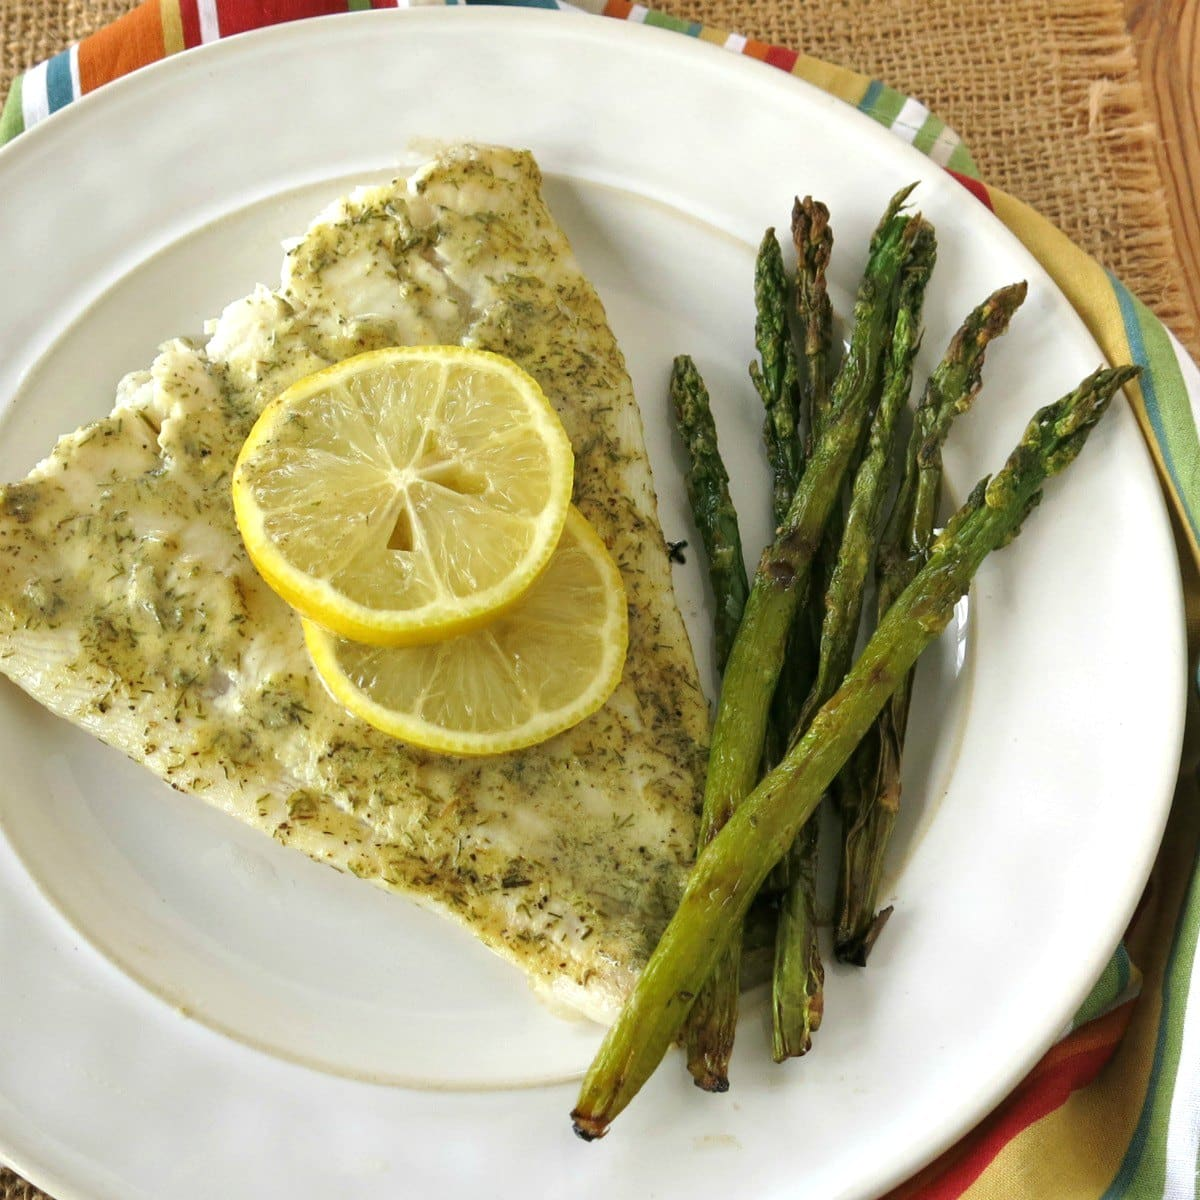 Serving of roasted Turbot with lemon slices on top and asparagus on plate.